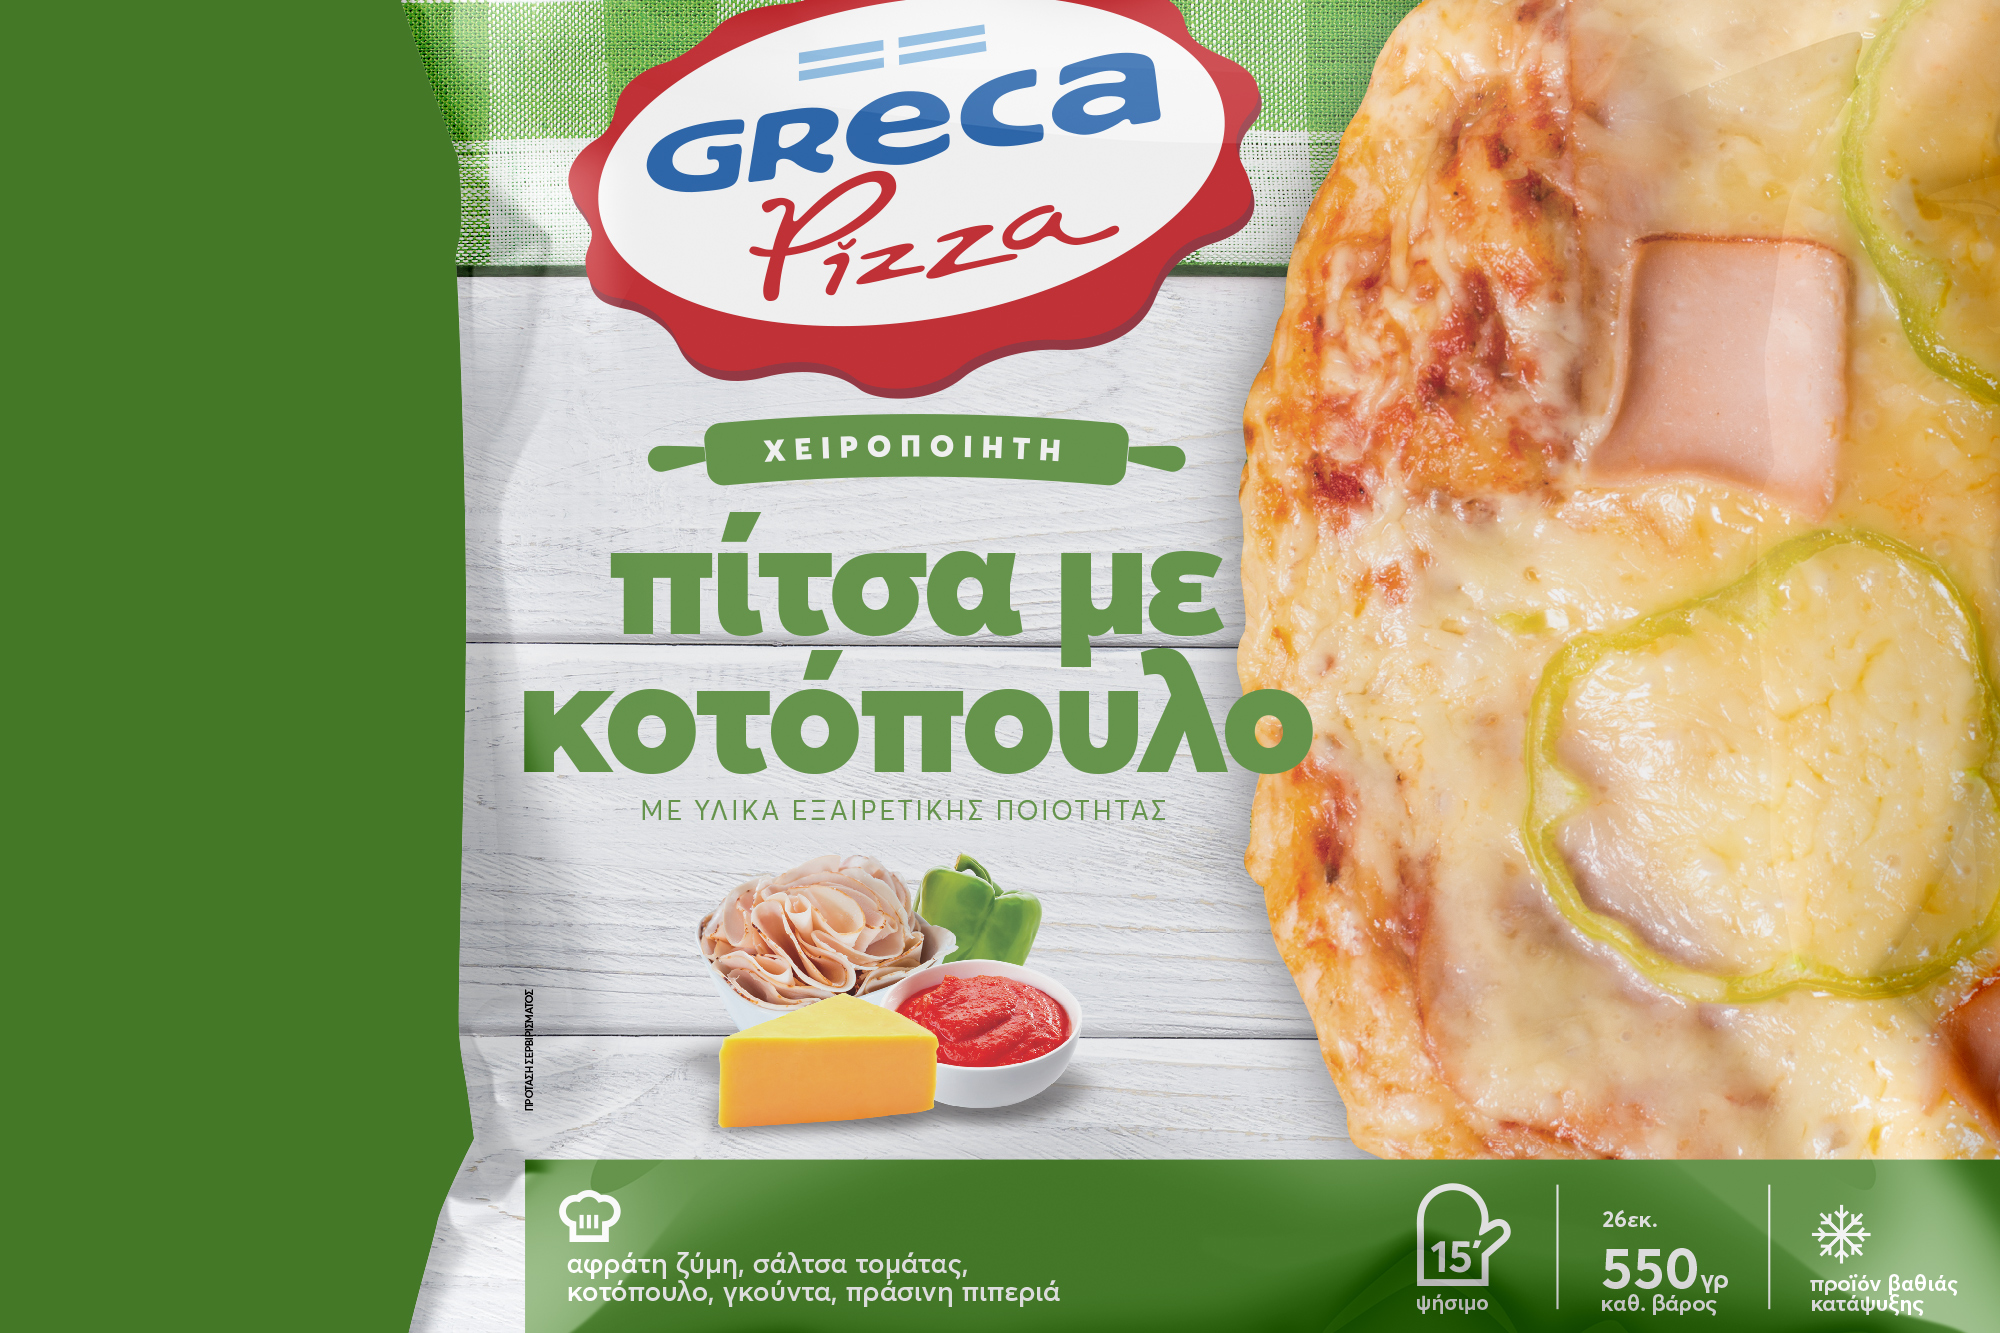 GrecaPizza_packaging_05